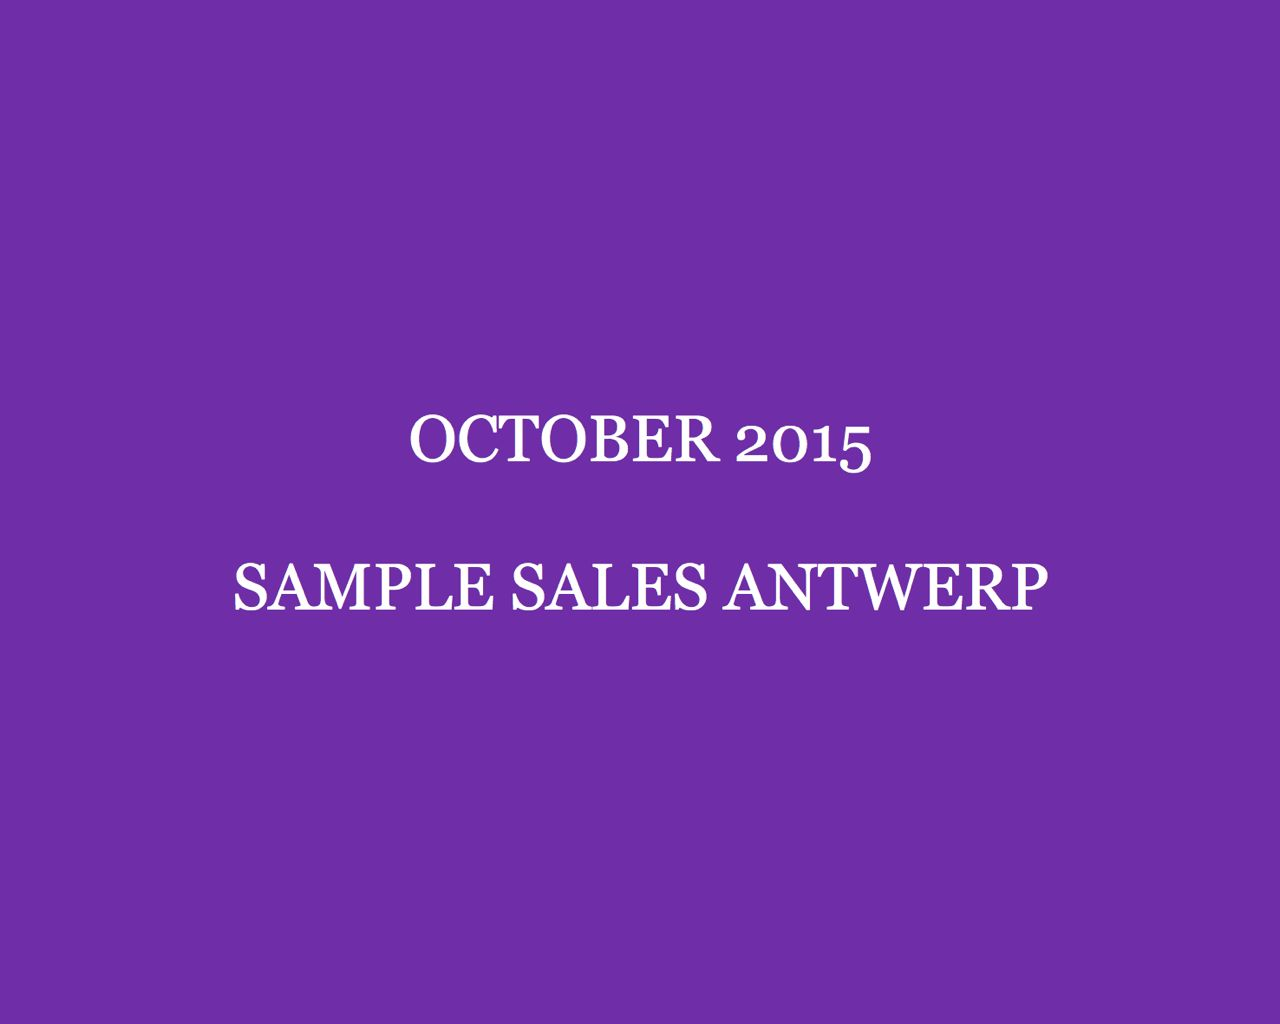 October 2015 Sample Sales Antwerp Style Barista Antwerp Sample Sales Antwerp Stock sales Contemporary Fashion Days sample sales Antwerpen sample sale